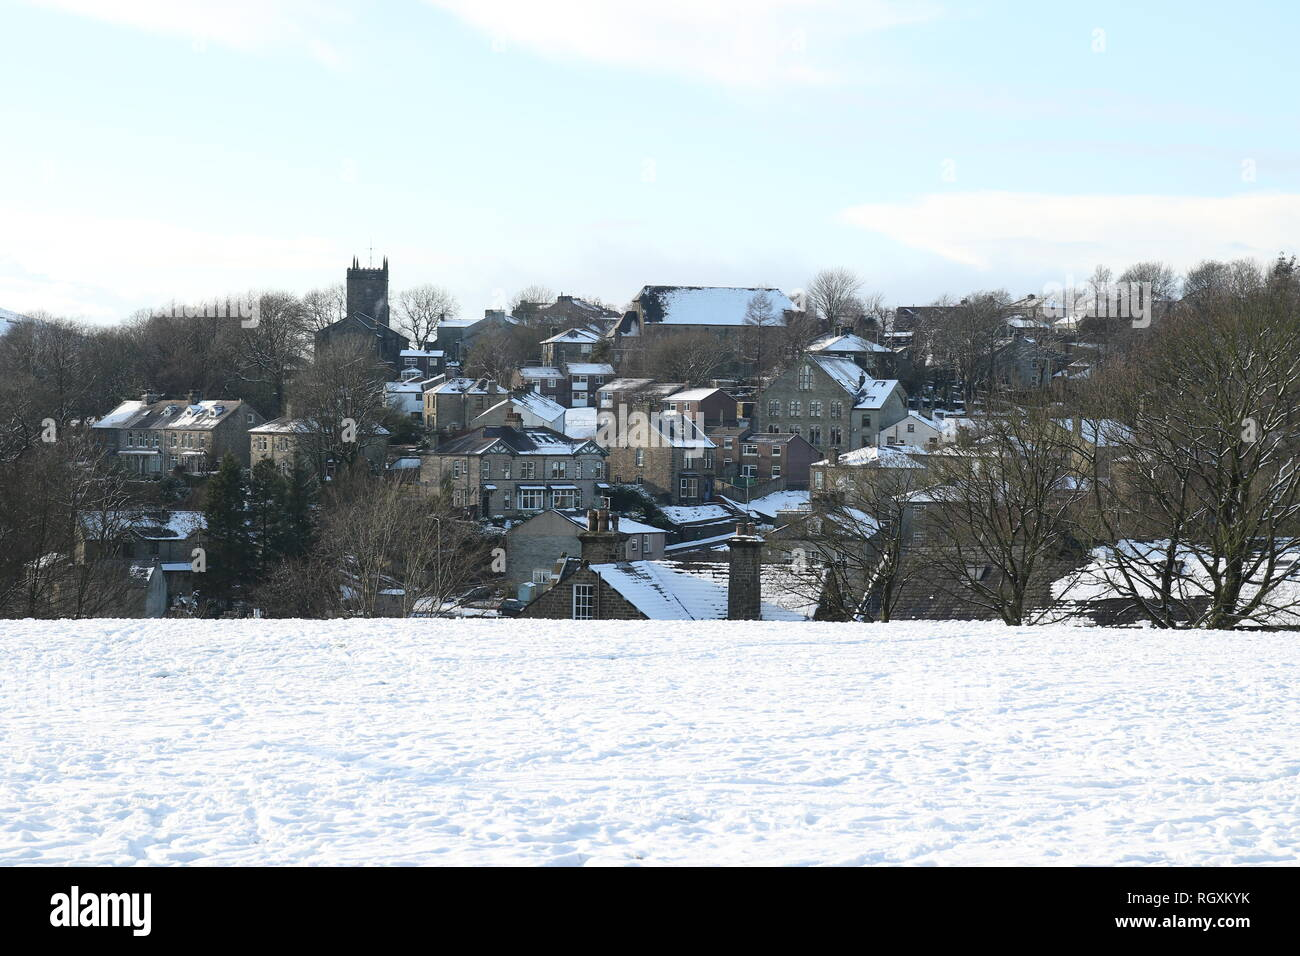 30/01/2019 This is the beautiful view of Water Village after a night of snow taken from Edgeside Park, Waterfoot, Rossendale, Lancashire UK - Stock Image